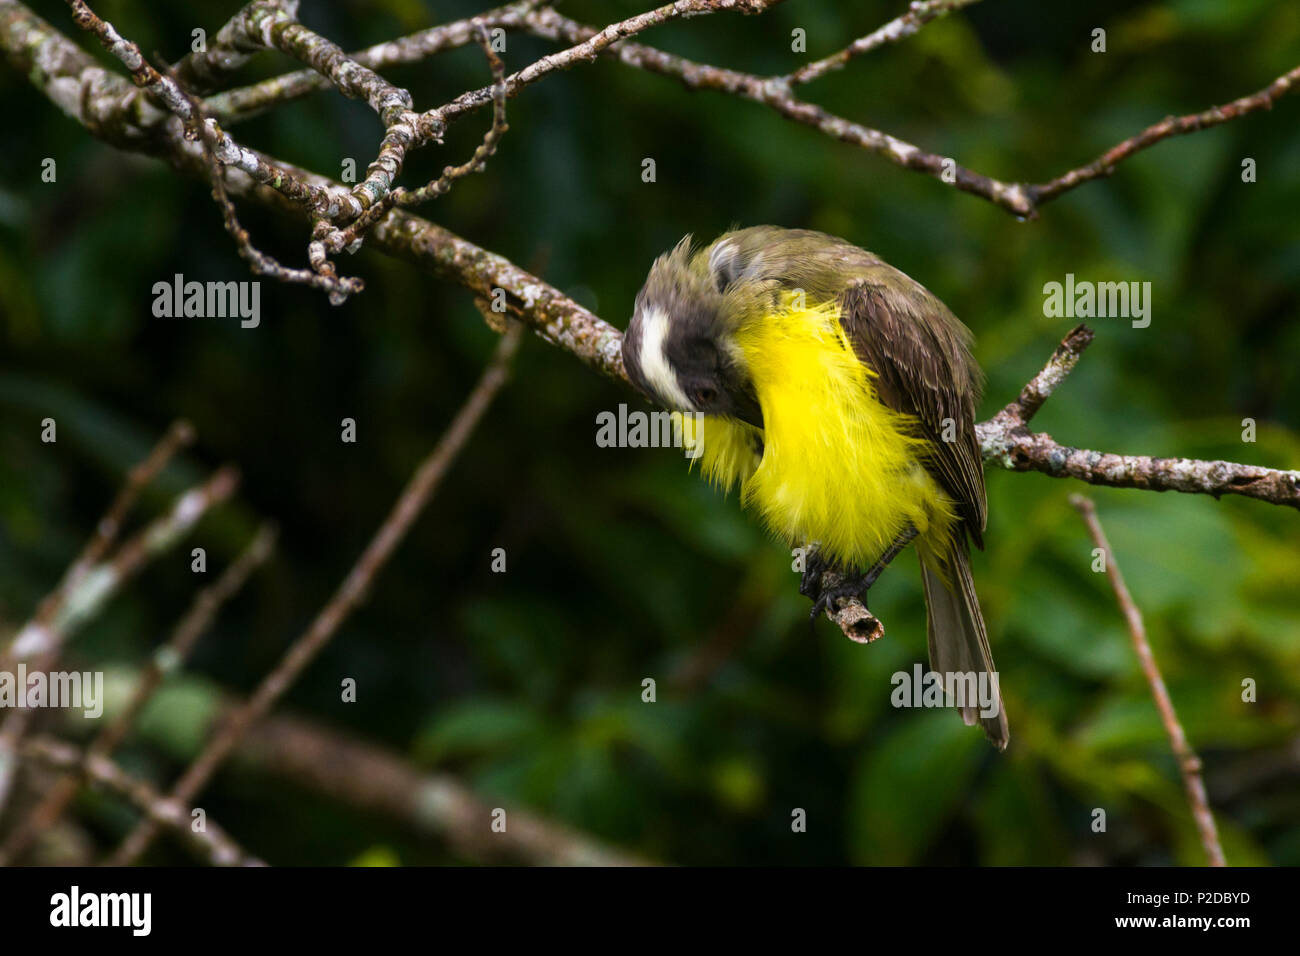 Little yellow breasted flycatcher bowing - Stock Image